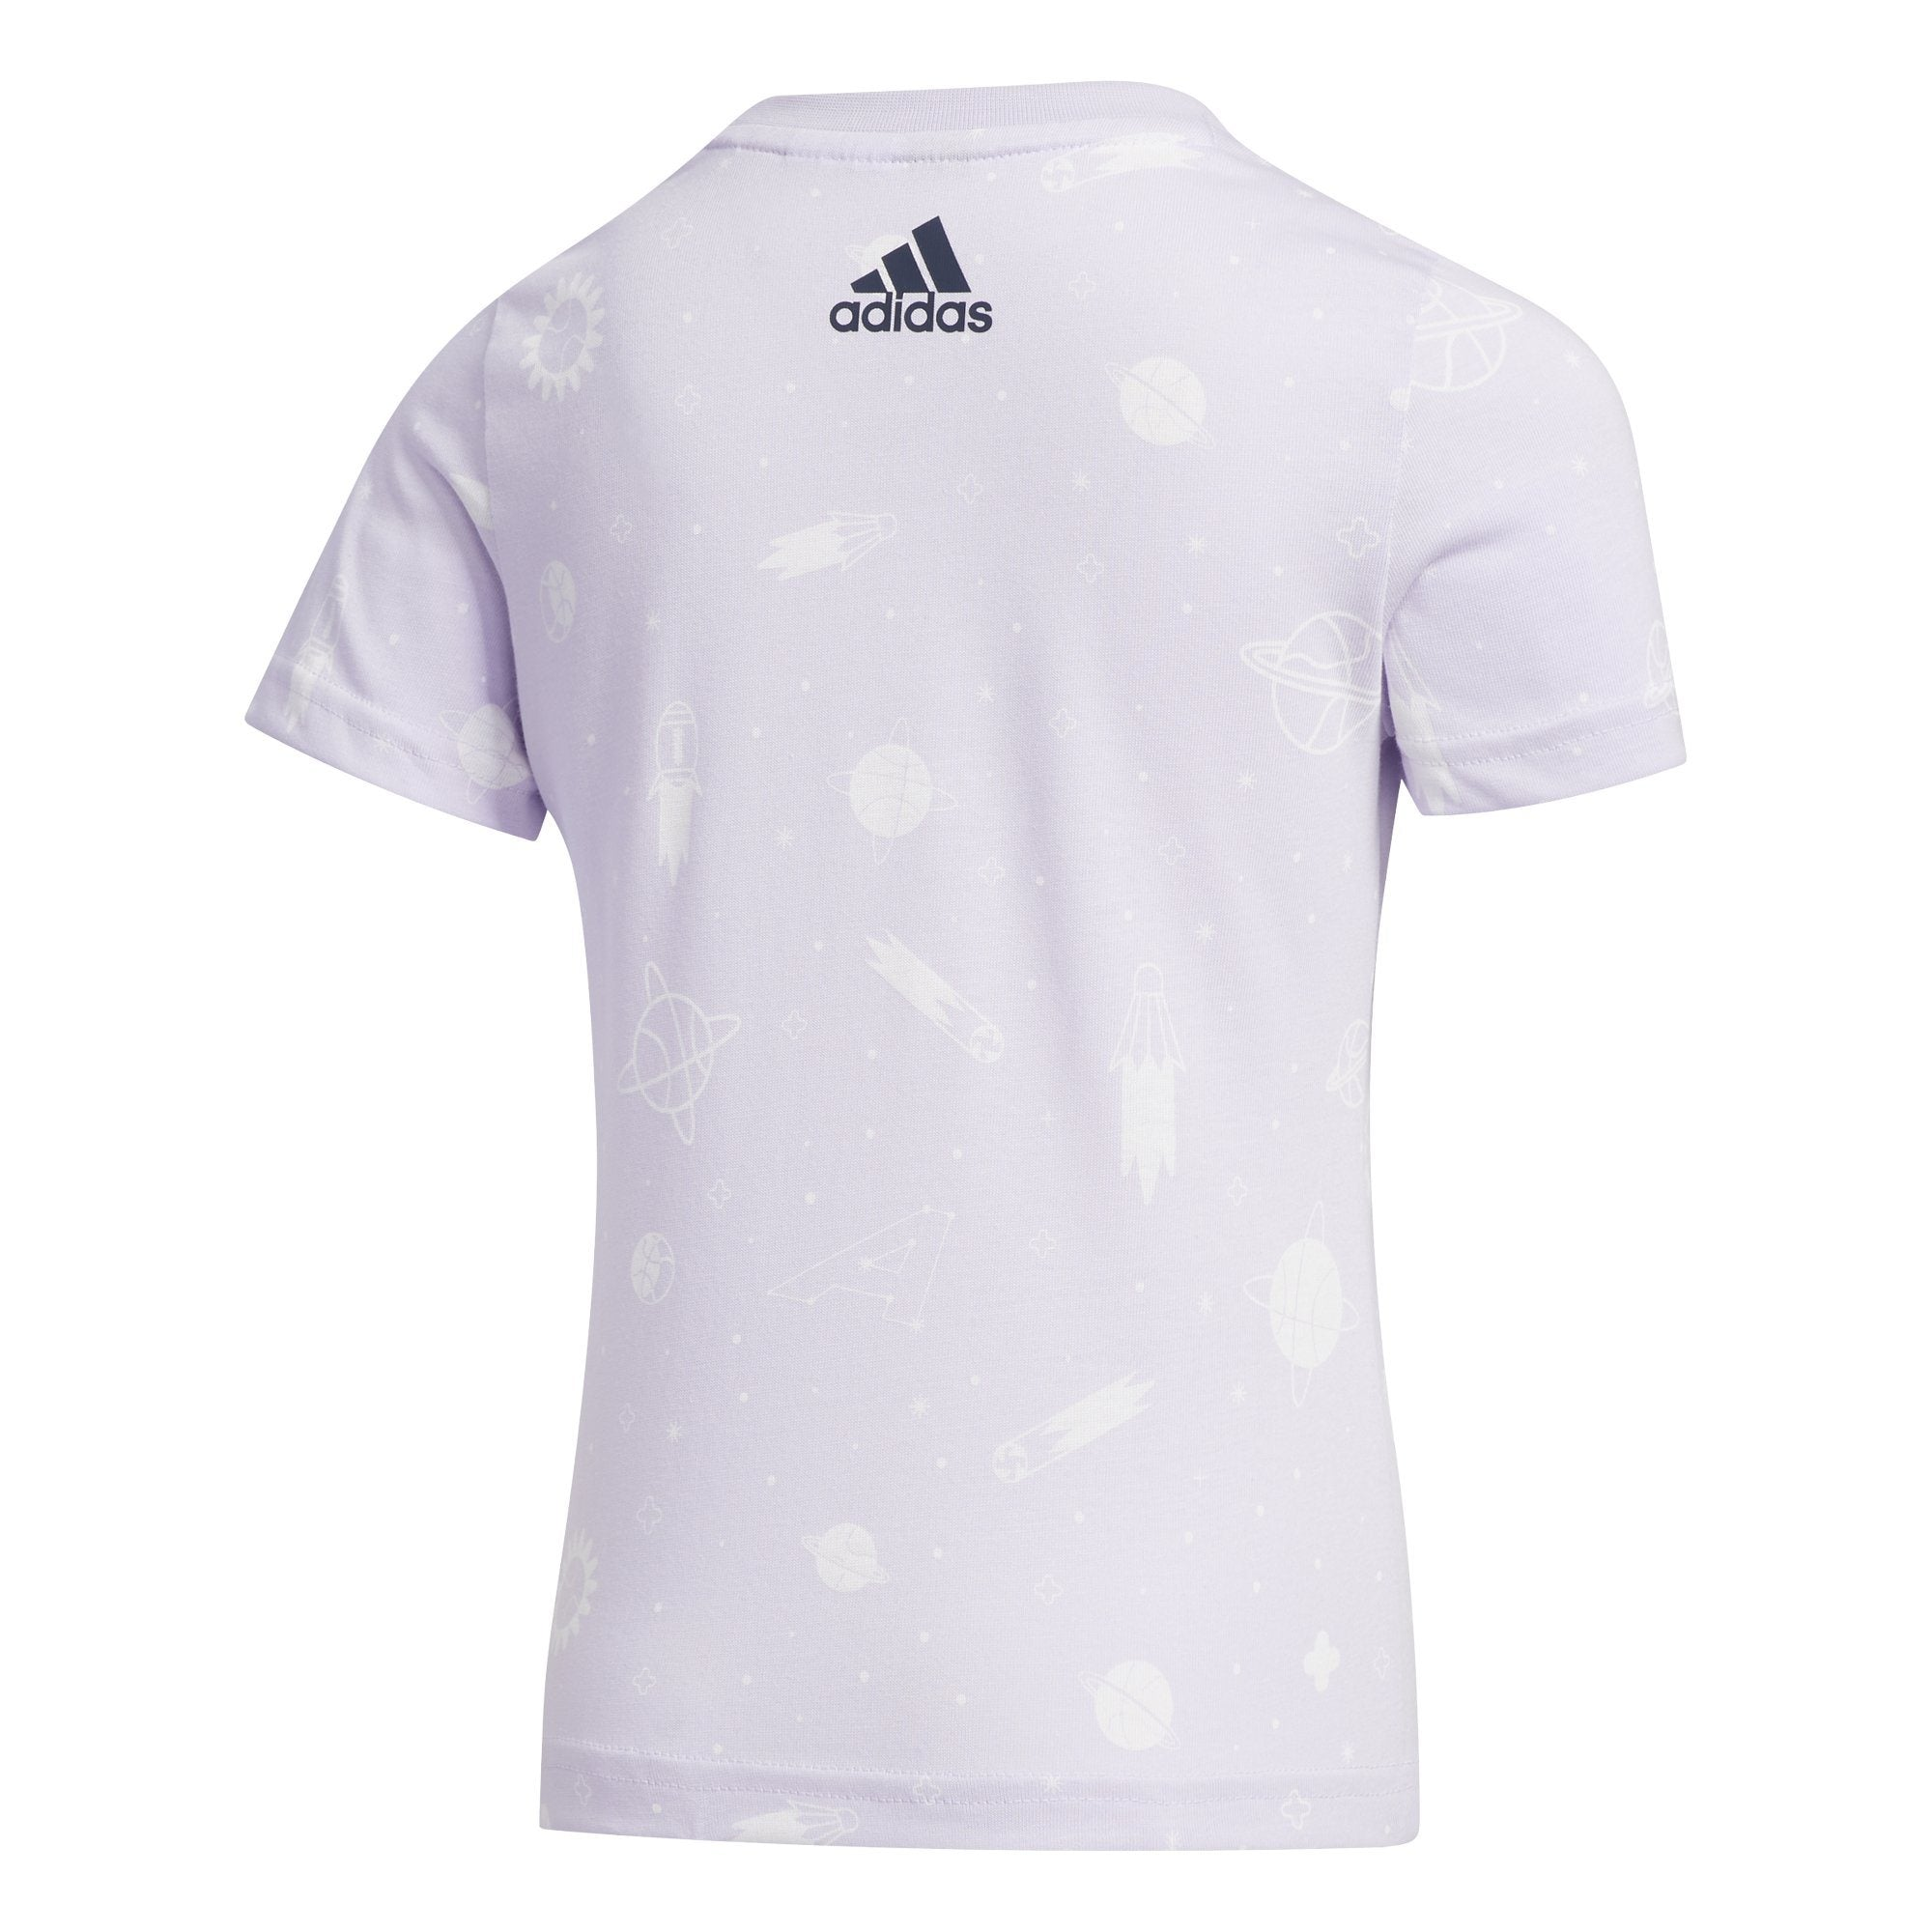 Adidas Kids Style Summer Tee - Purple Tint SP-ApparelTees-Kids Adidas